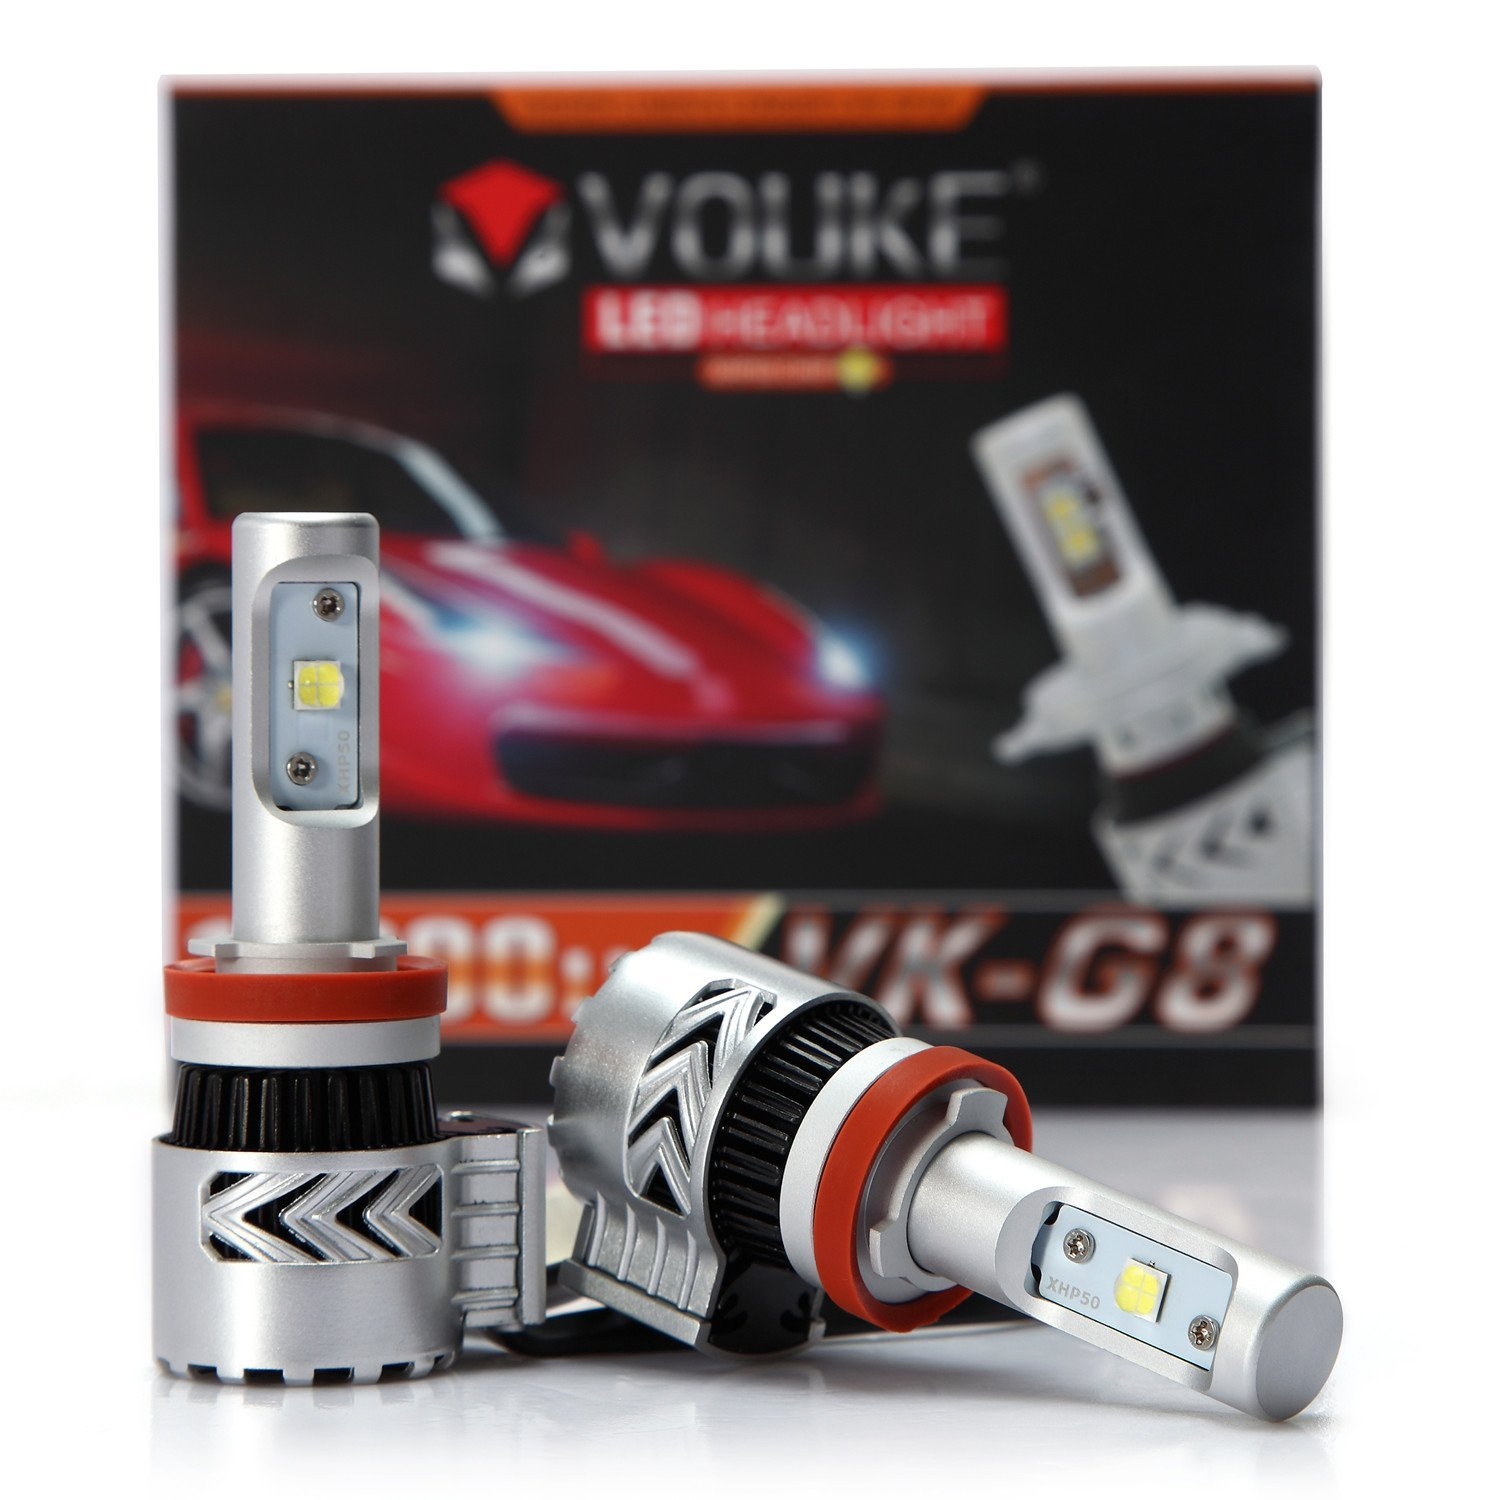 VK-G8 H11 H8 H9 12000LM LED Headlight Conversion Kit, Low Beam Headlamp, Fog Driving Light, HID or Halogen Head light Replacement, 6500K Xenon White, 2pcs- 2 Year Warranty